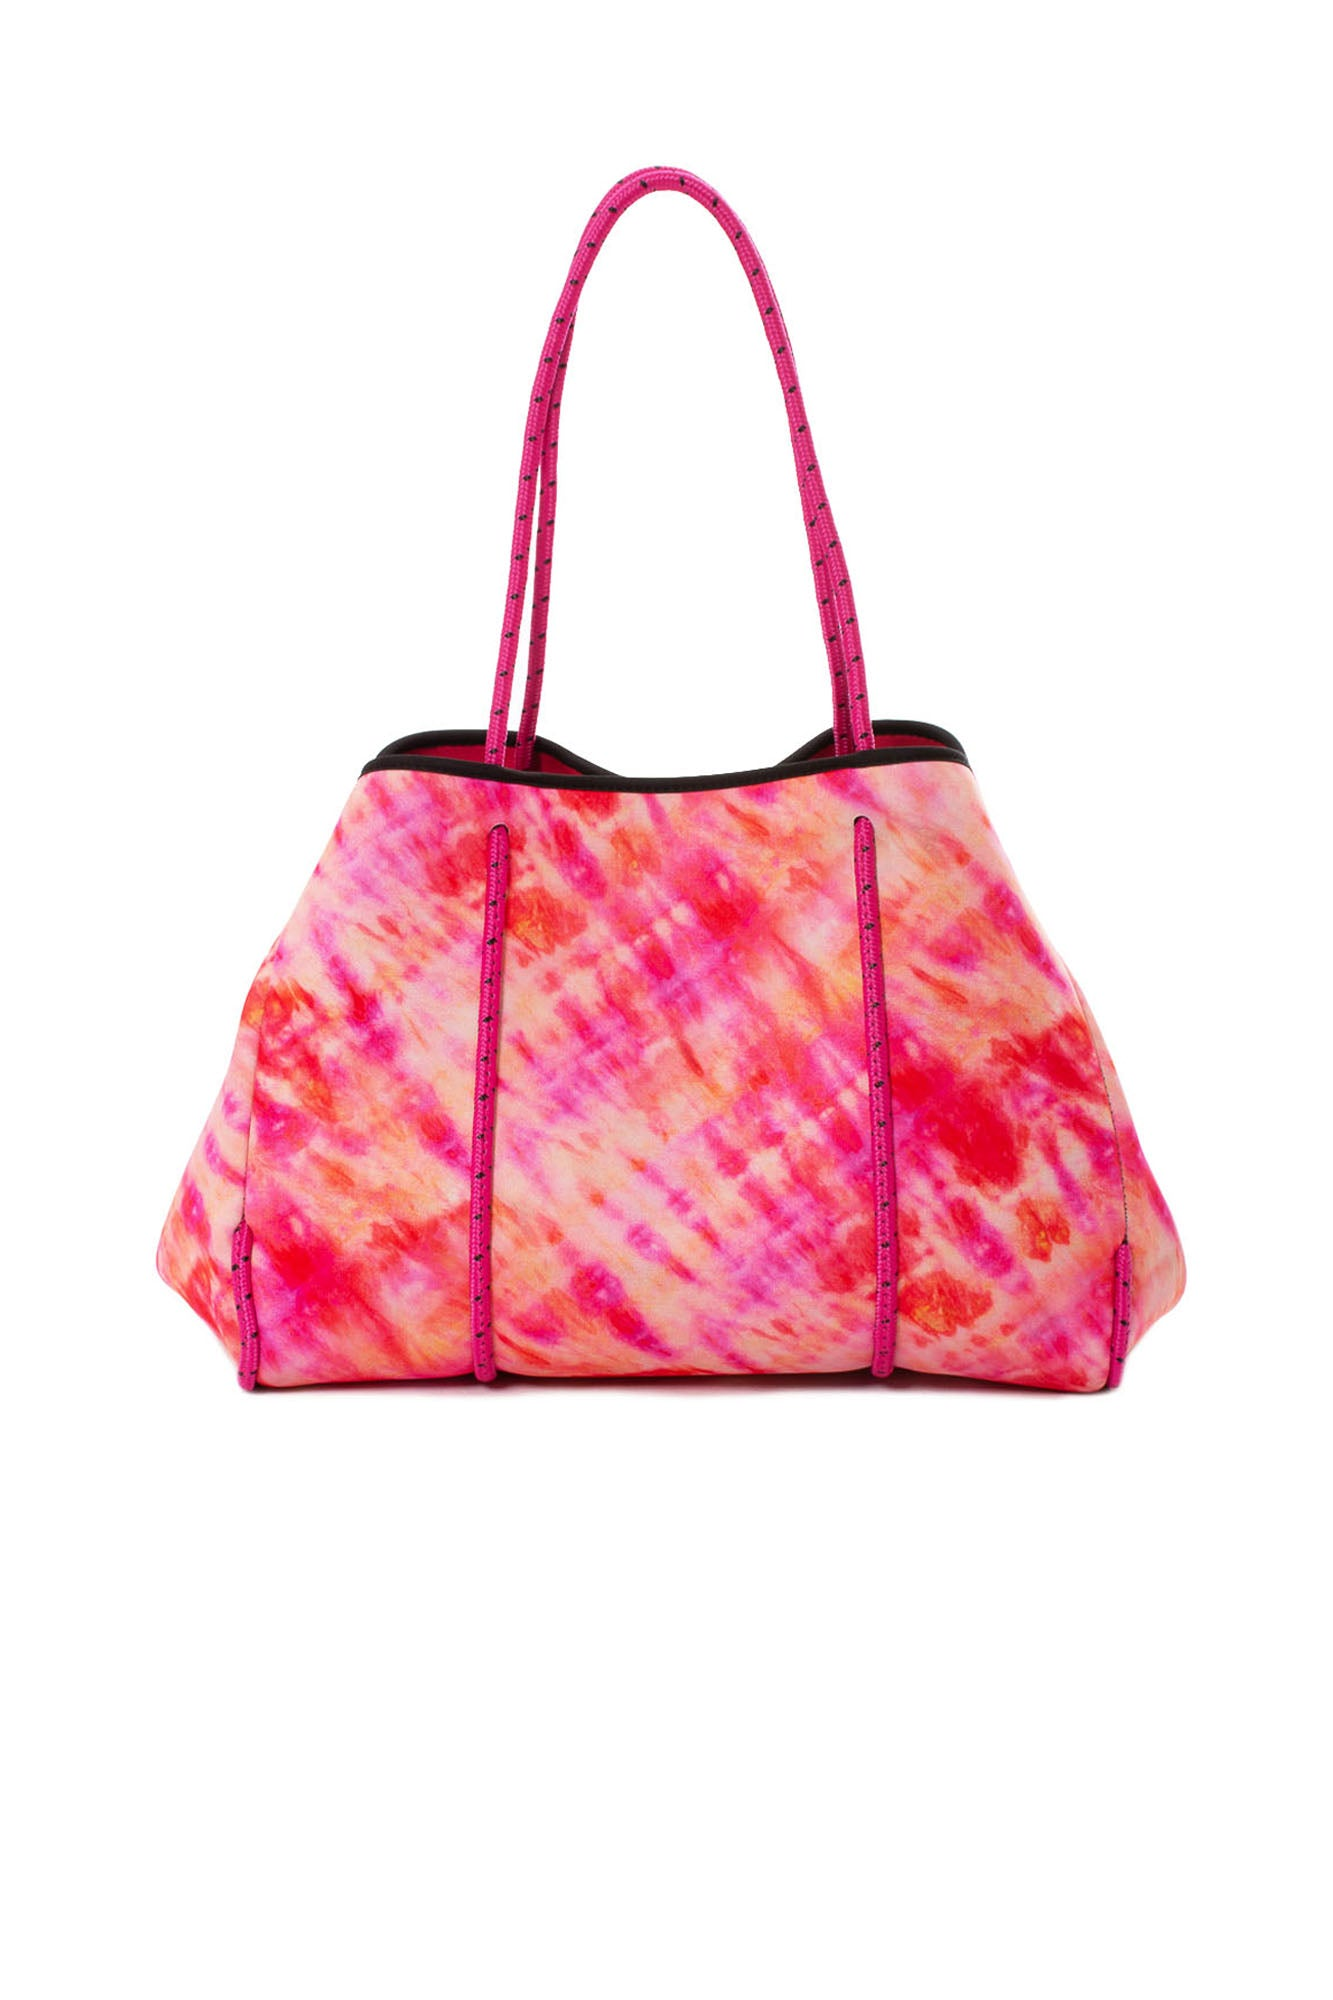 Greyson Sunset Tote Bag with/Tethered Removable Wristlet (Style Sunset, Tie-Dye Red & Pink) by Haute Shore